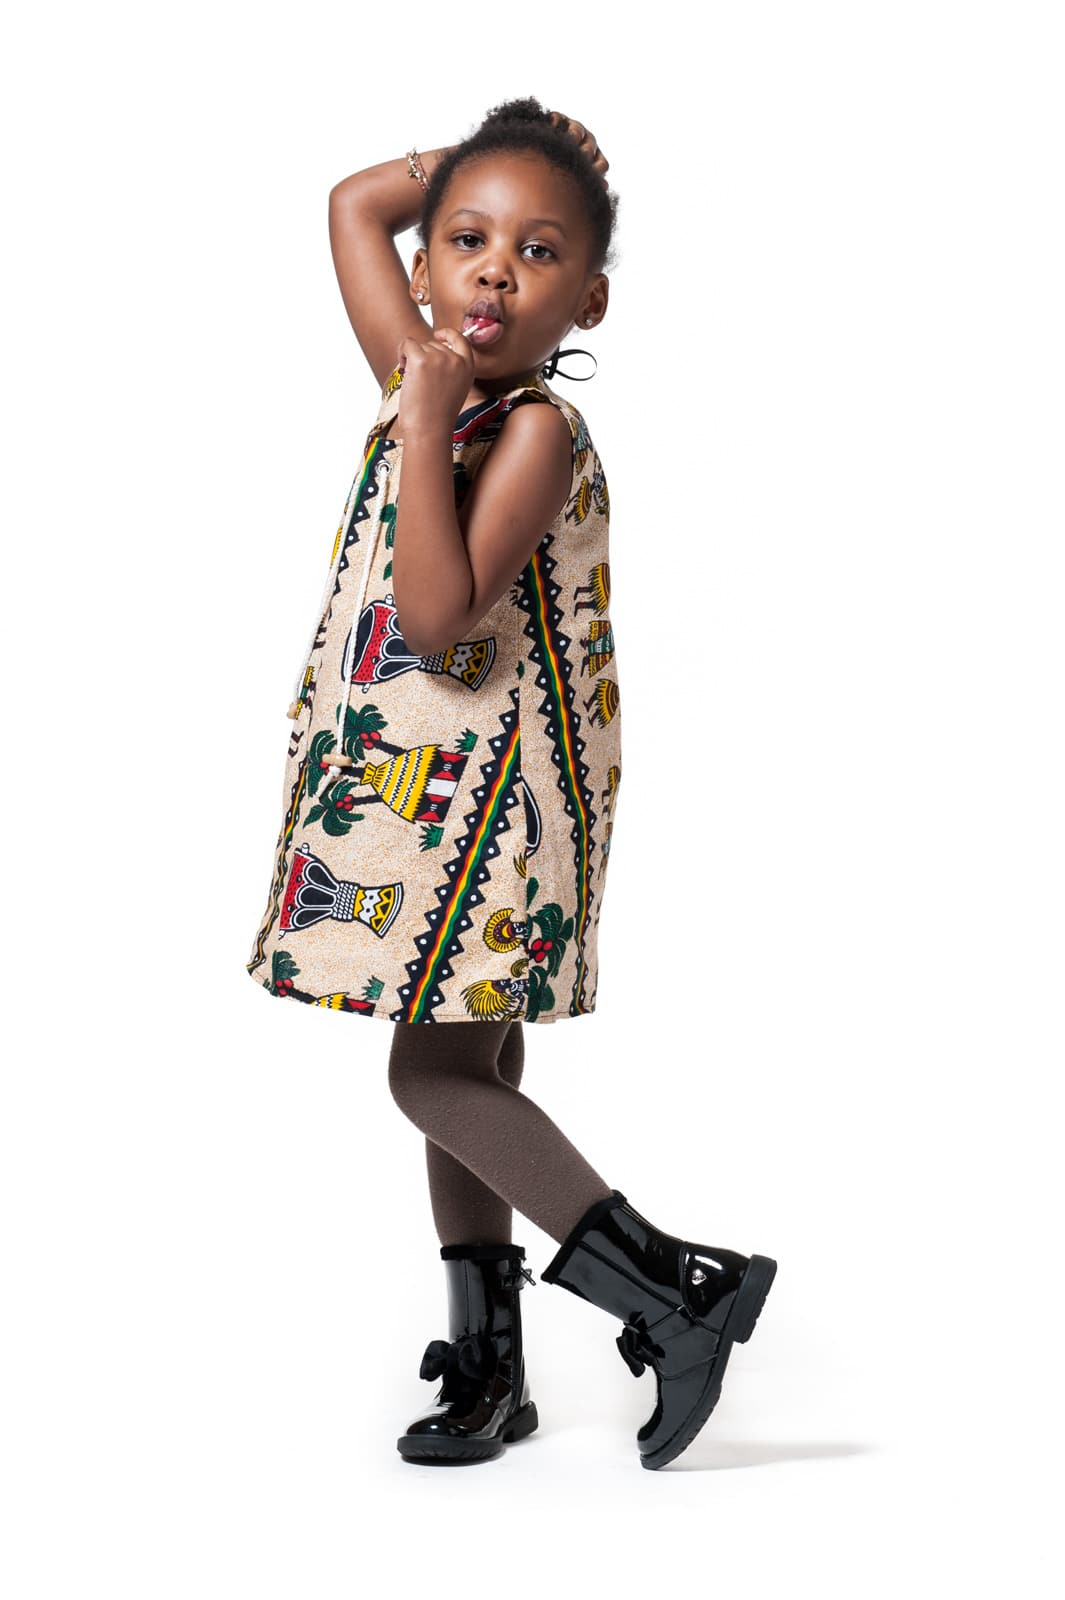 April modelling kids' clothes designed by Karen Jonga for New Africa Nation